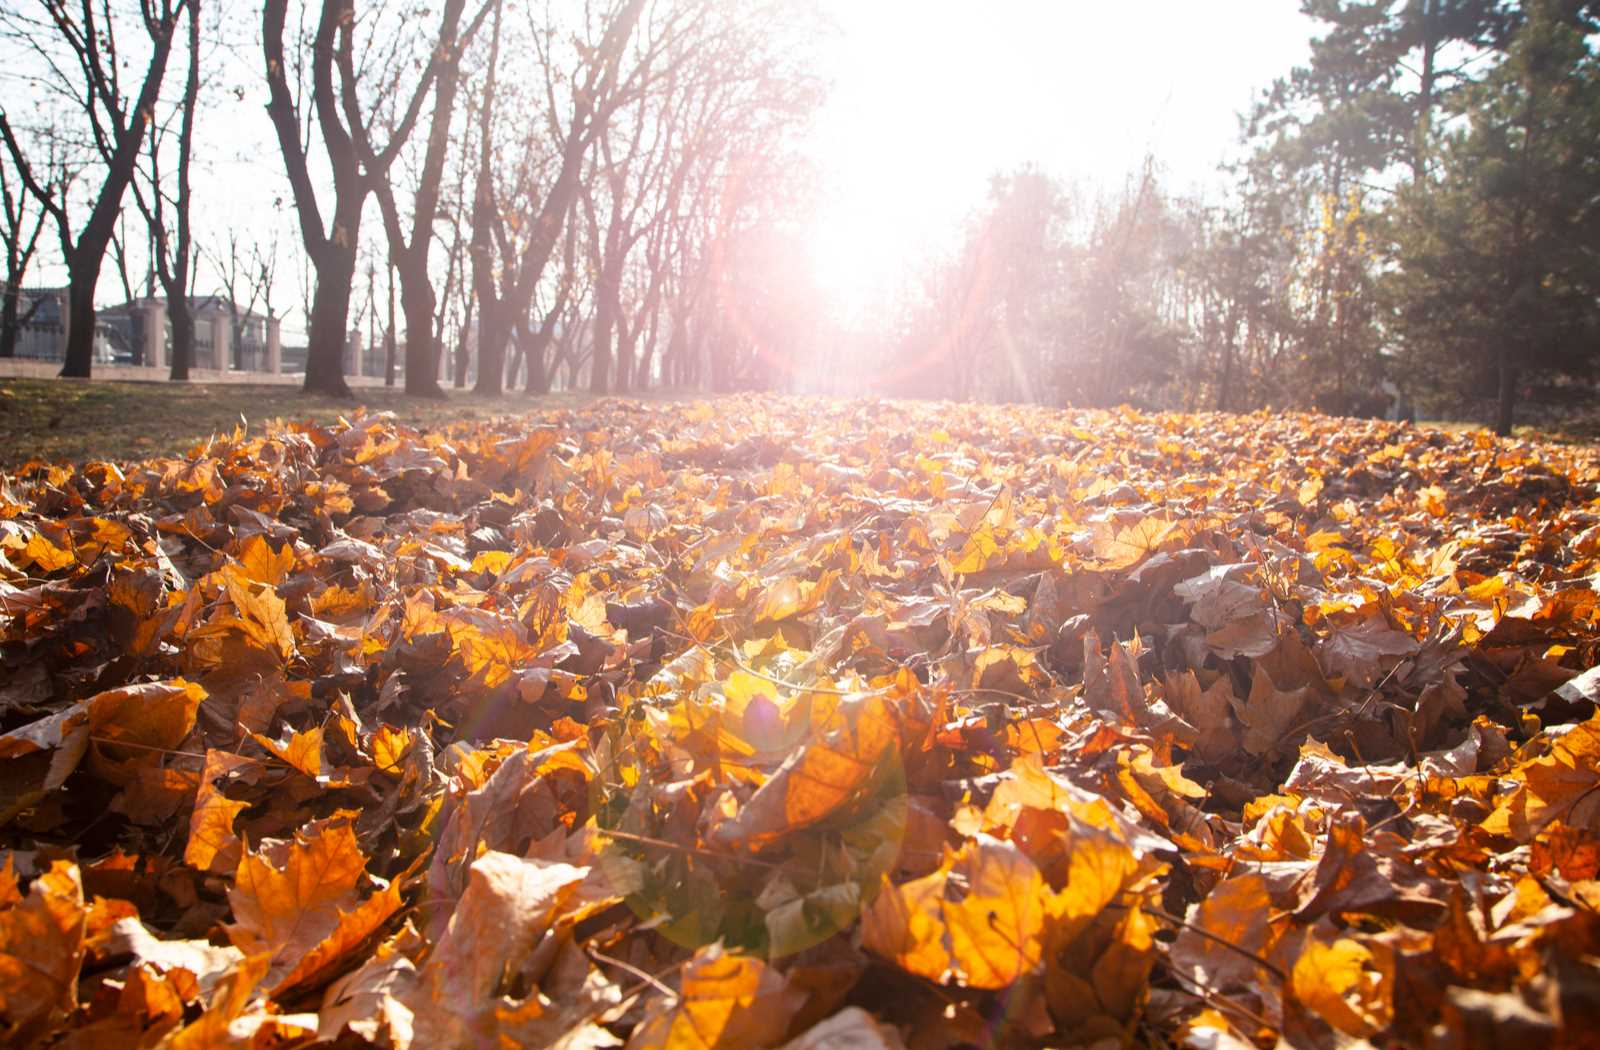 autumn leaves at golden hour by trees